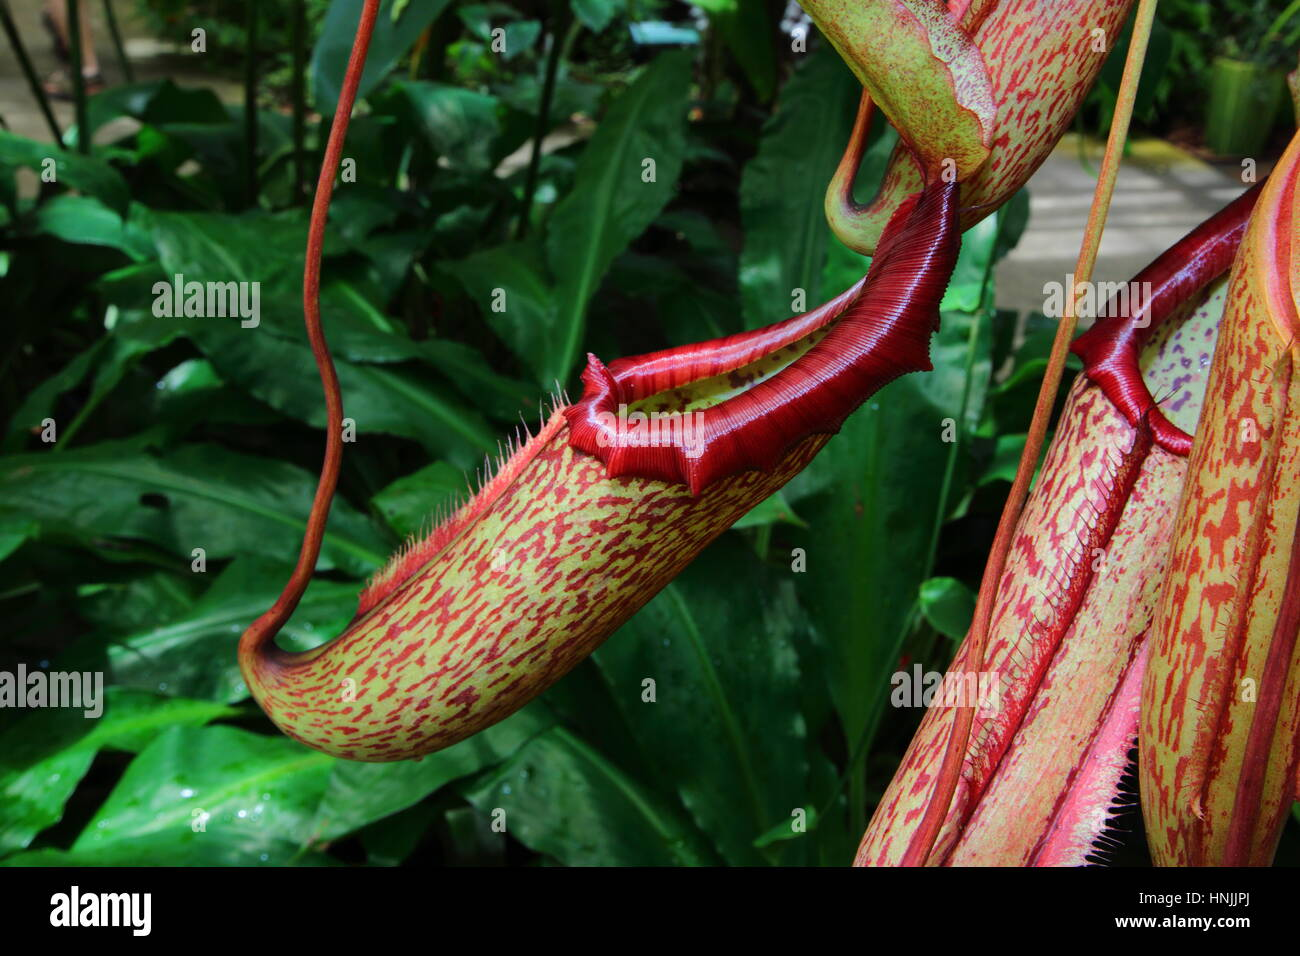 Close up of a tropical species of pitcher plant. - Stock Image